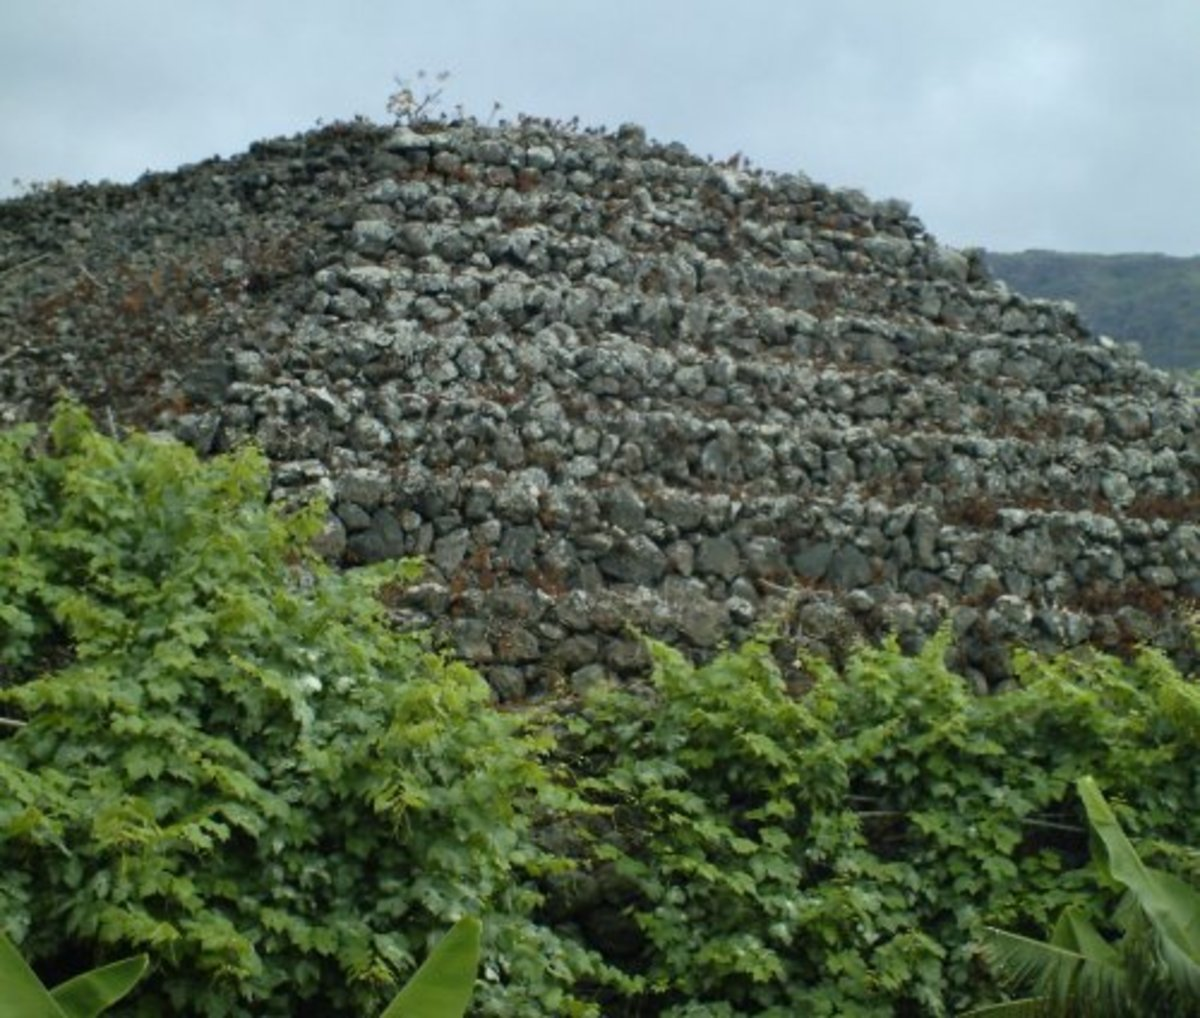 One of the Camino de La Suerte pyramids